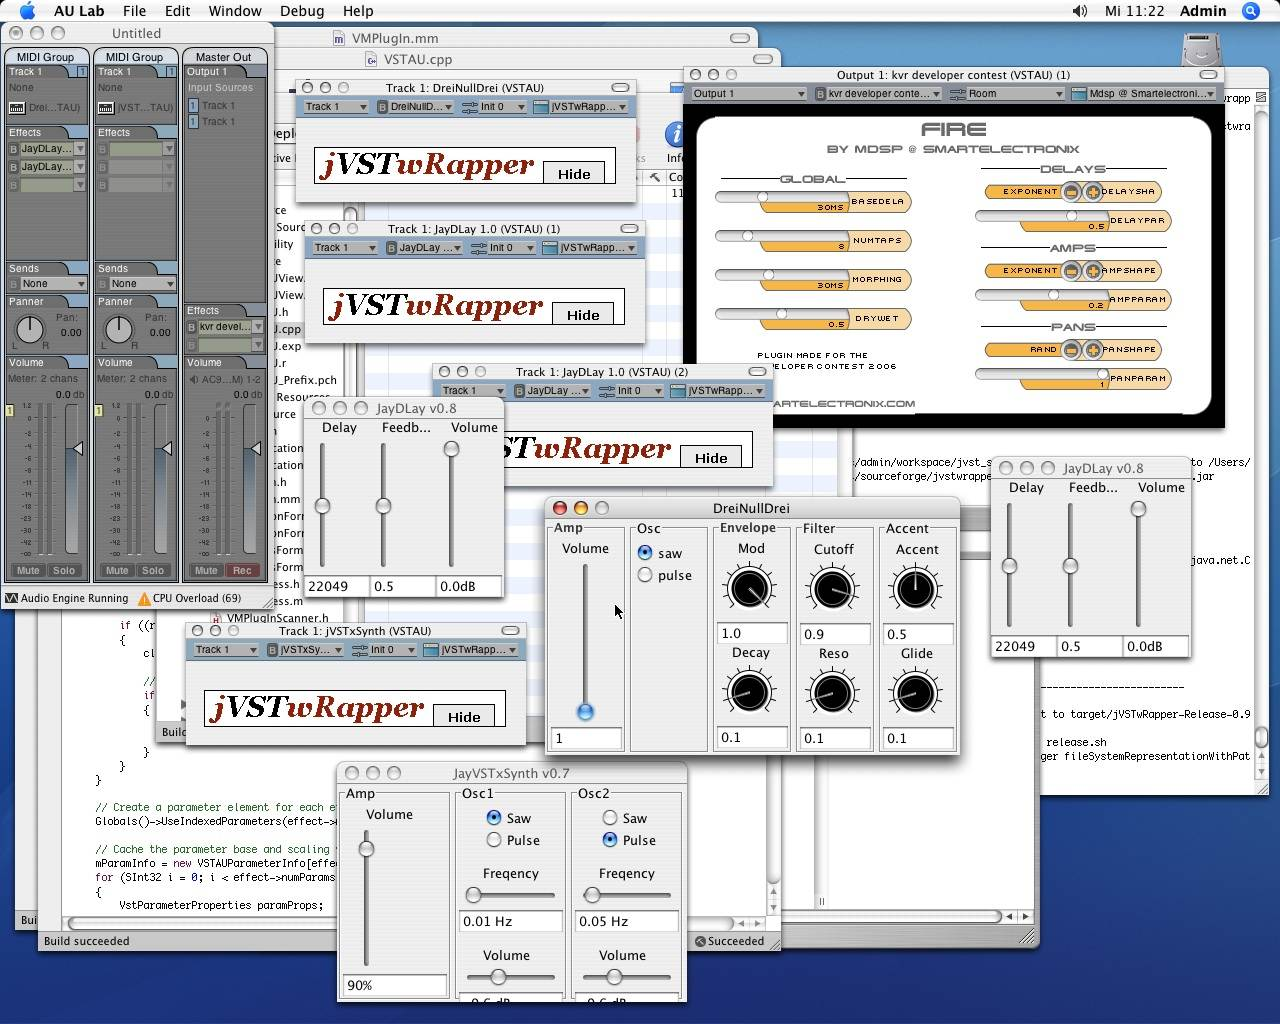 jVSTwRapper - Java-Based Audio Plug-Ins